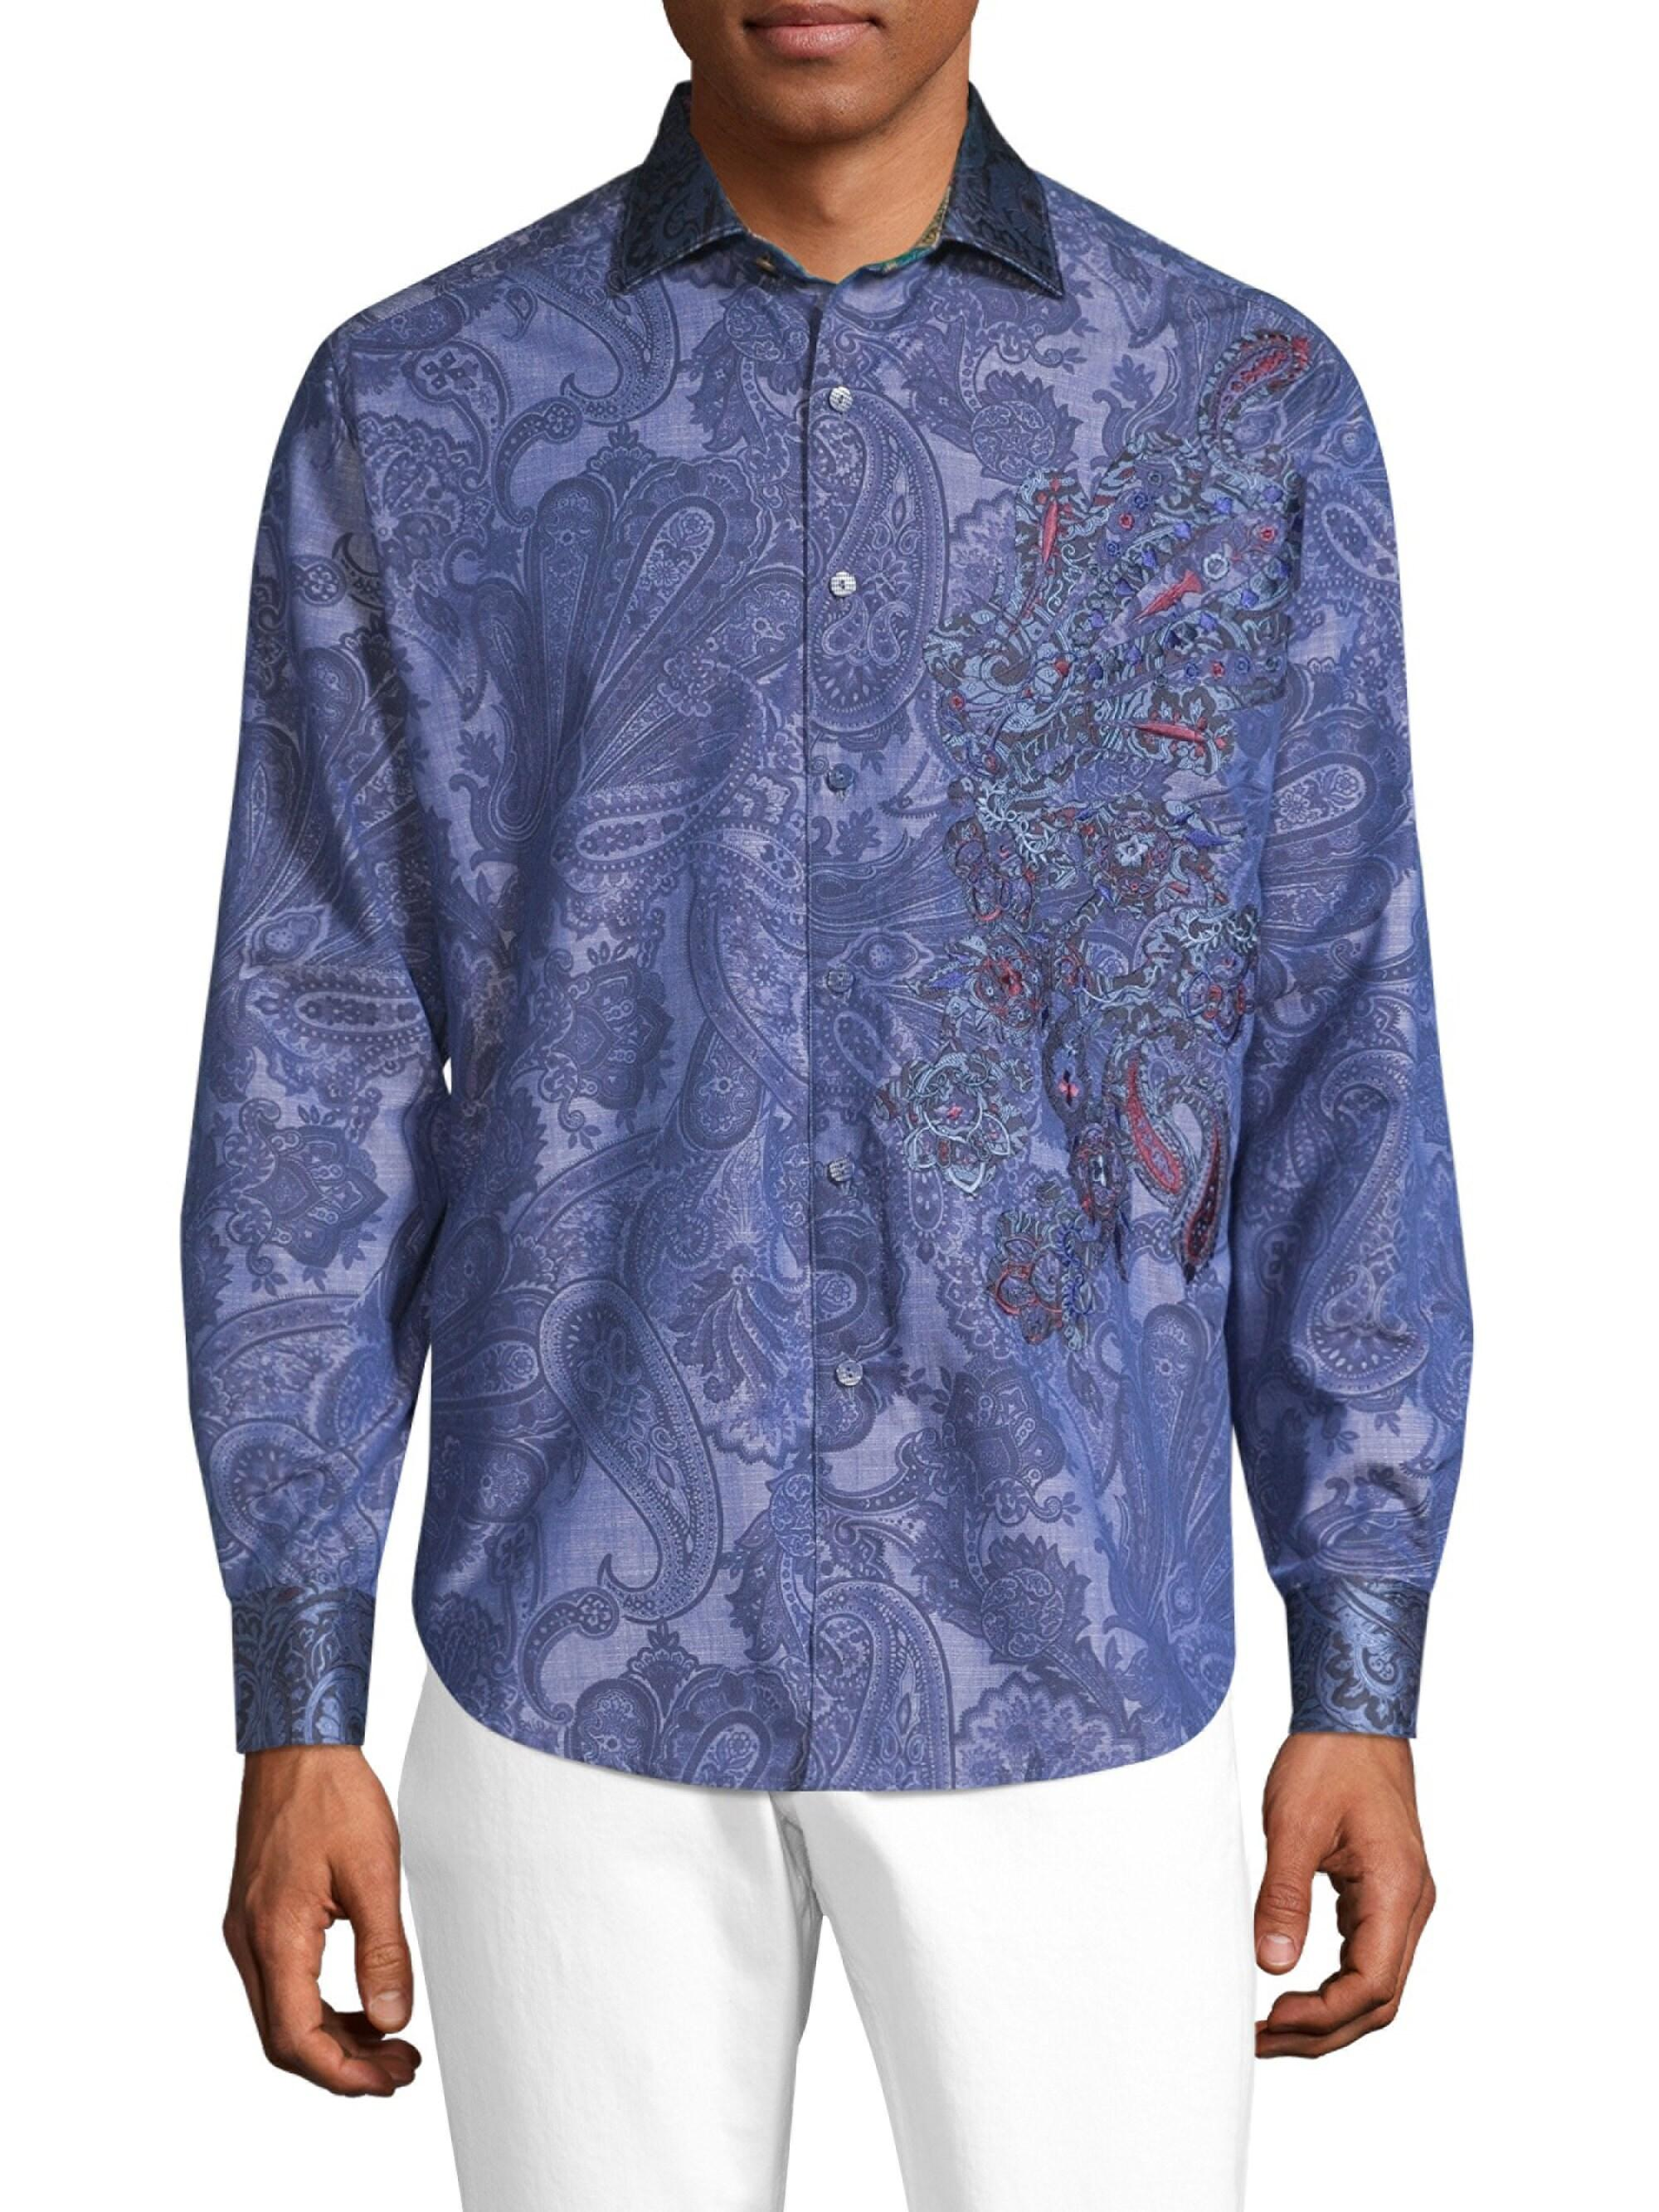 Robert Graham Patrick Floral Printed Short Sleeve Sport Shirt Tailored Fit